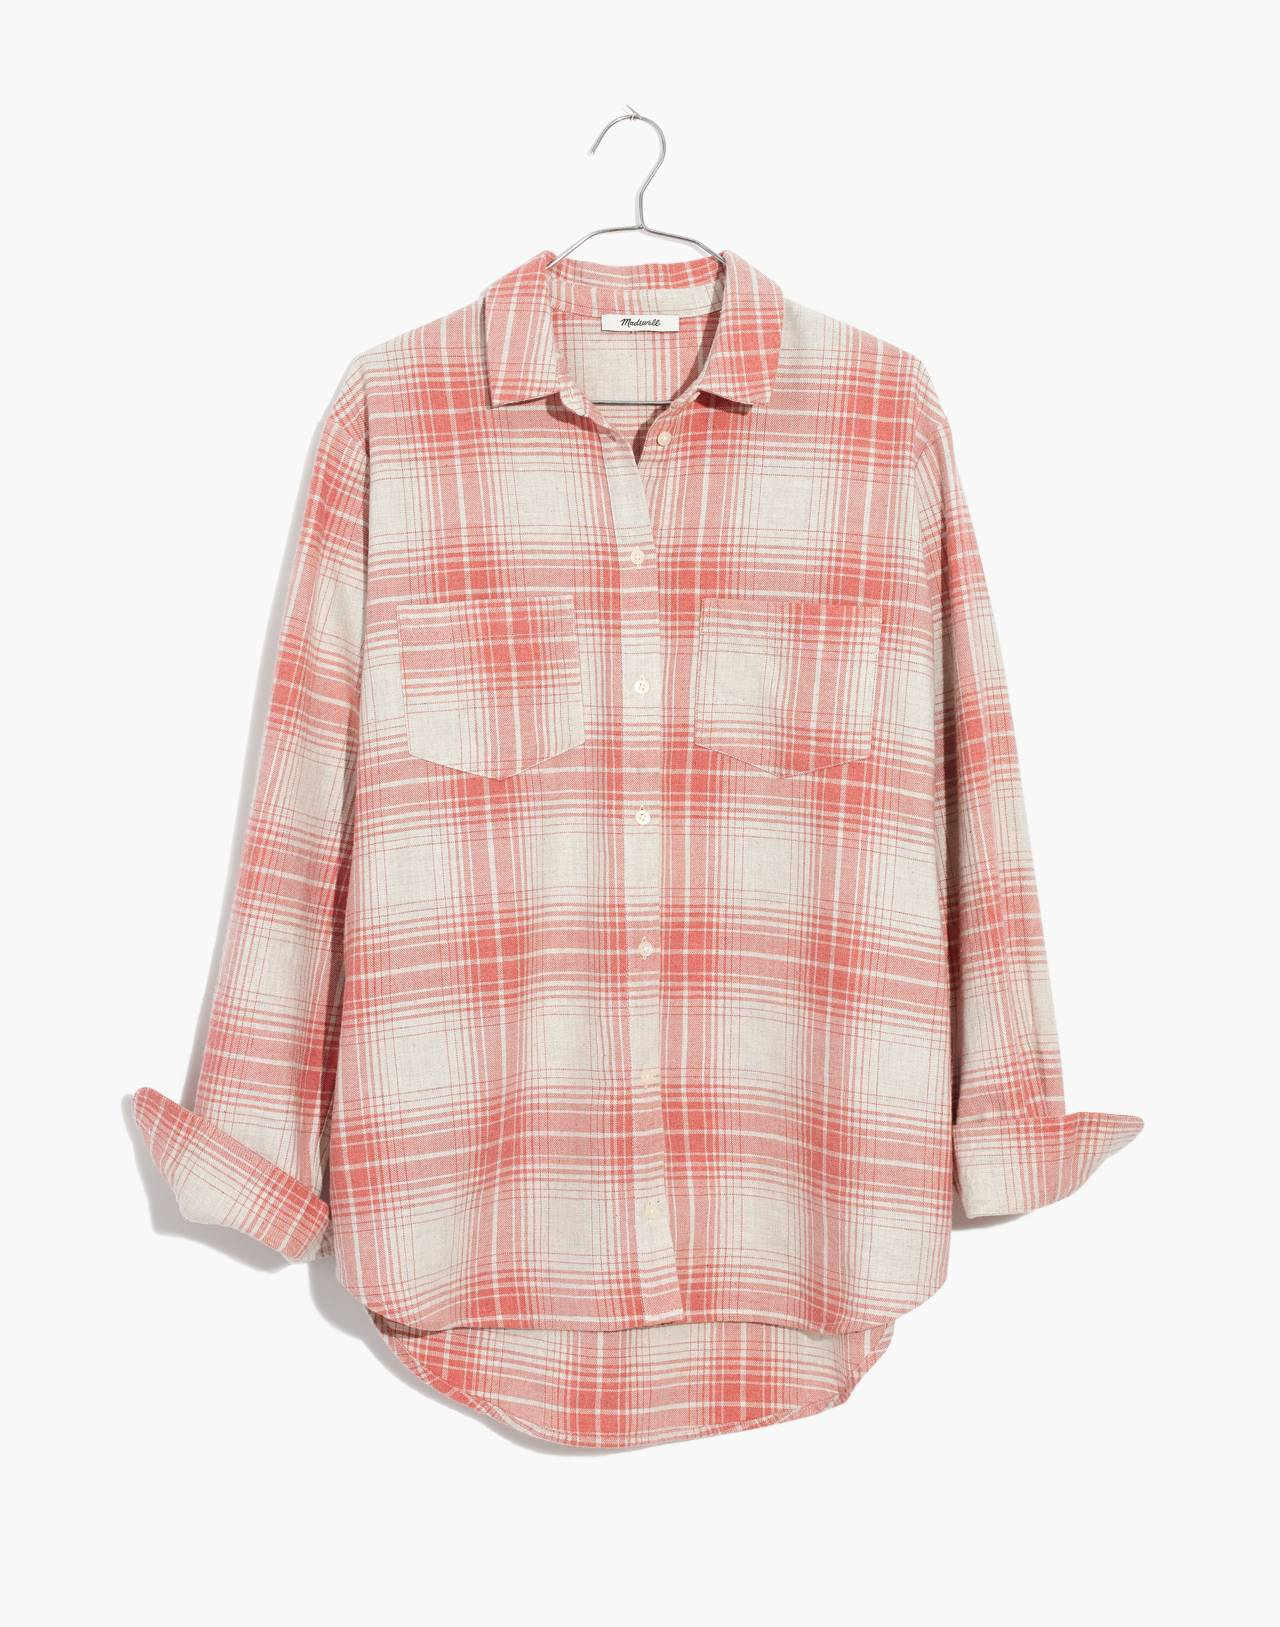 Flannel Sunday Shirt in Pink Plaid in harris plaid red as per image 4